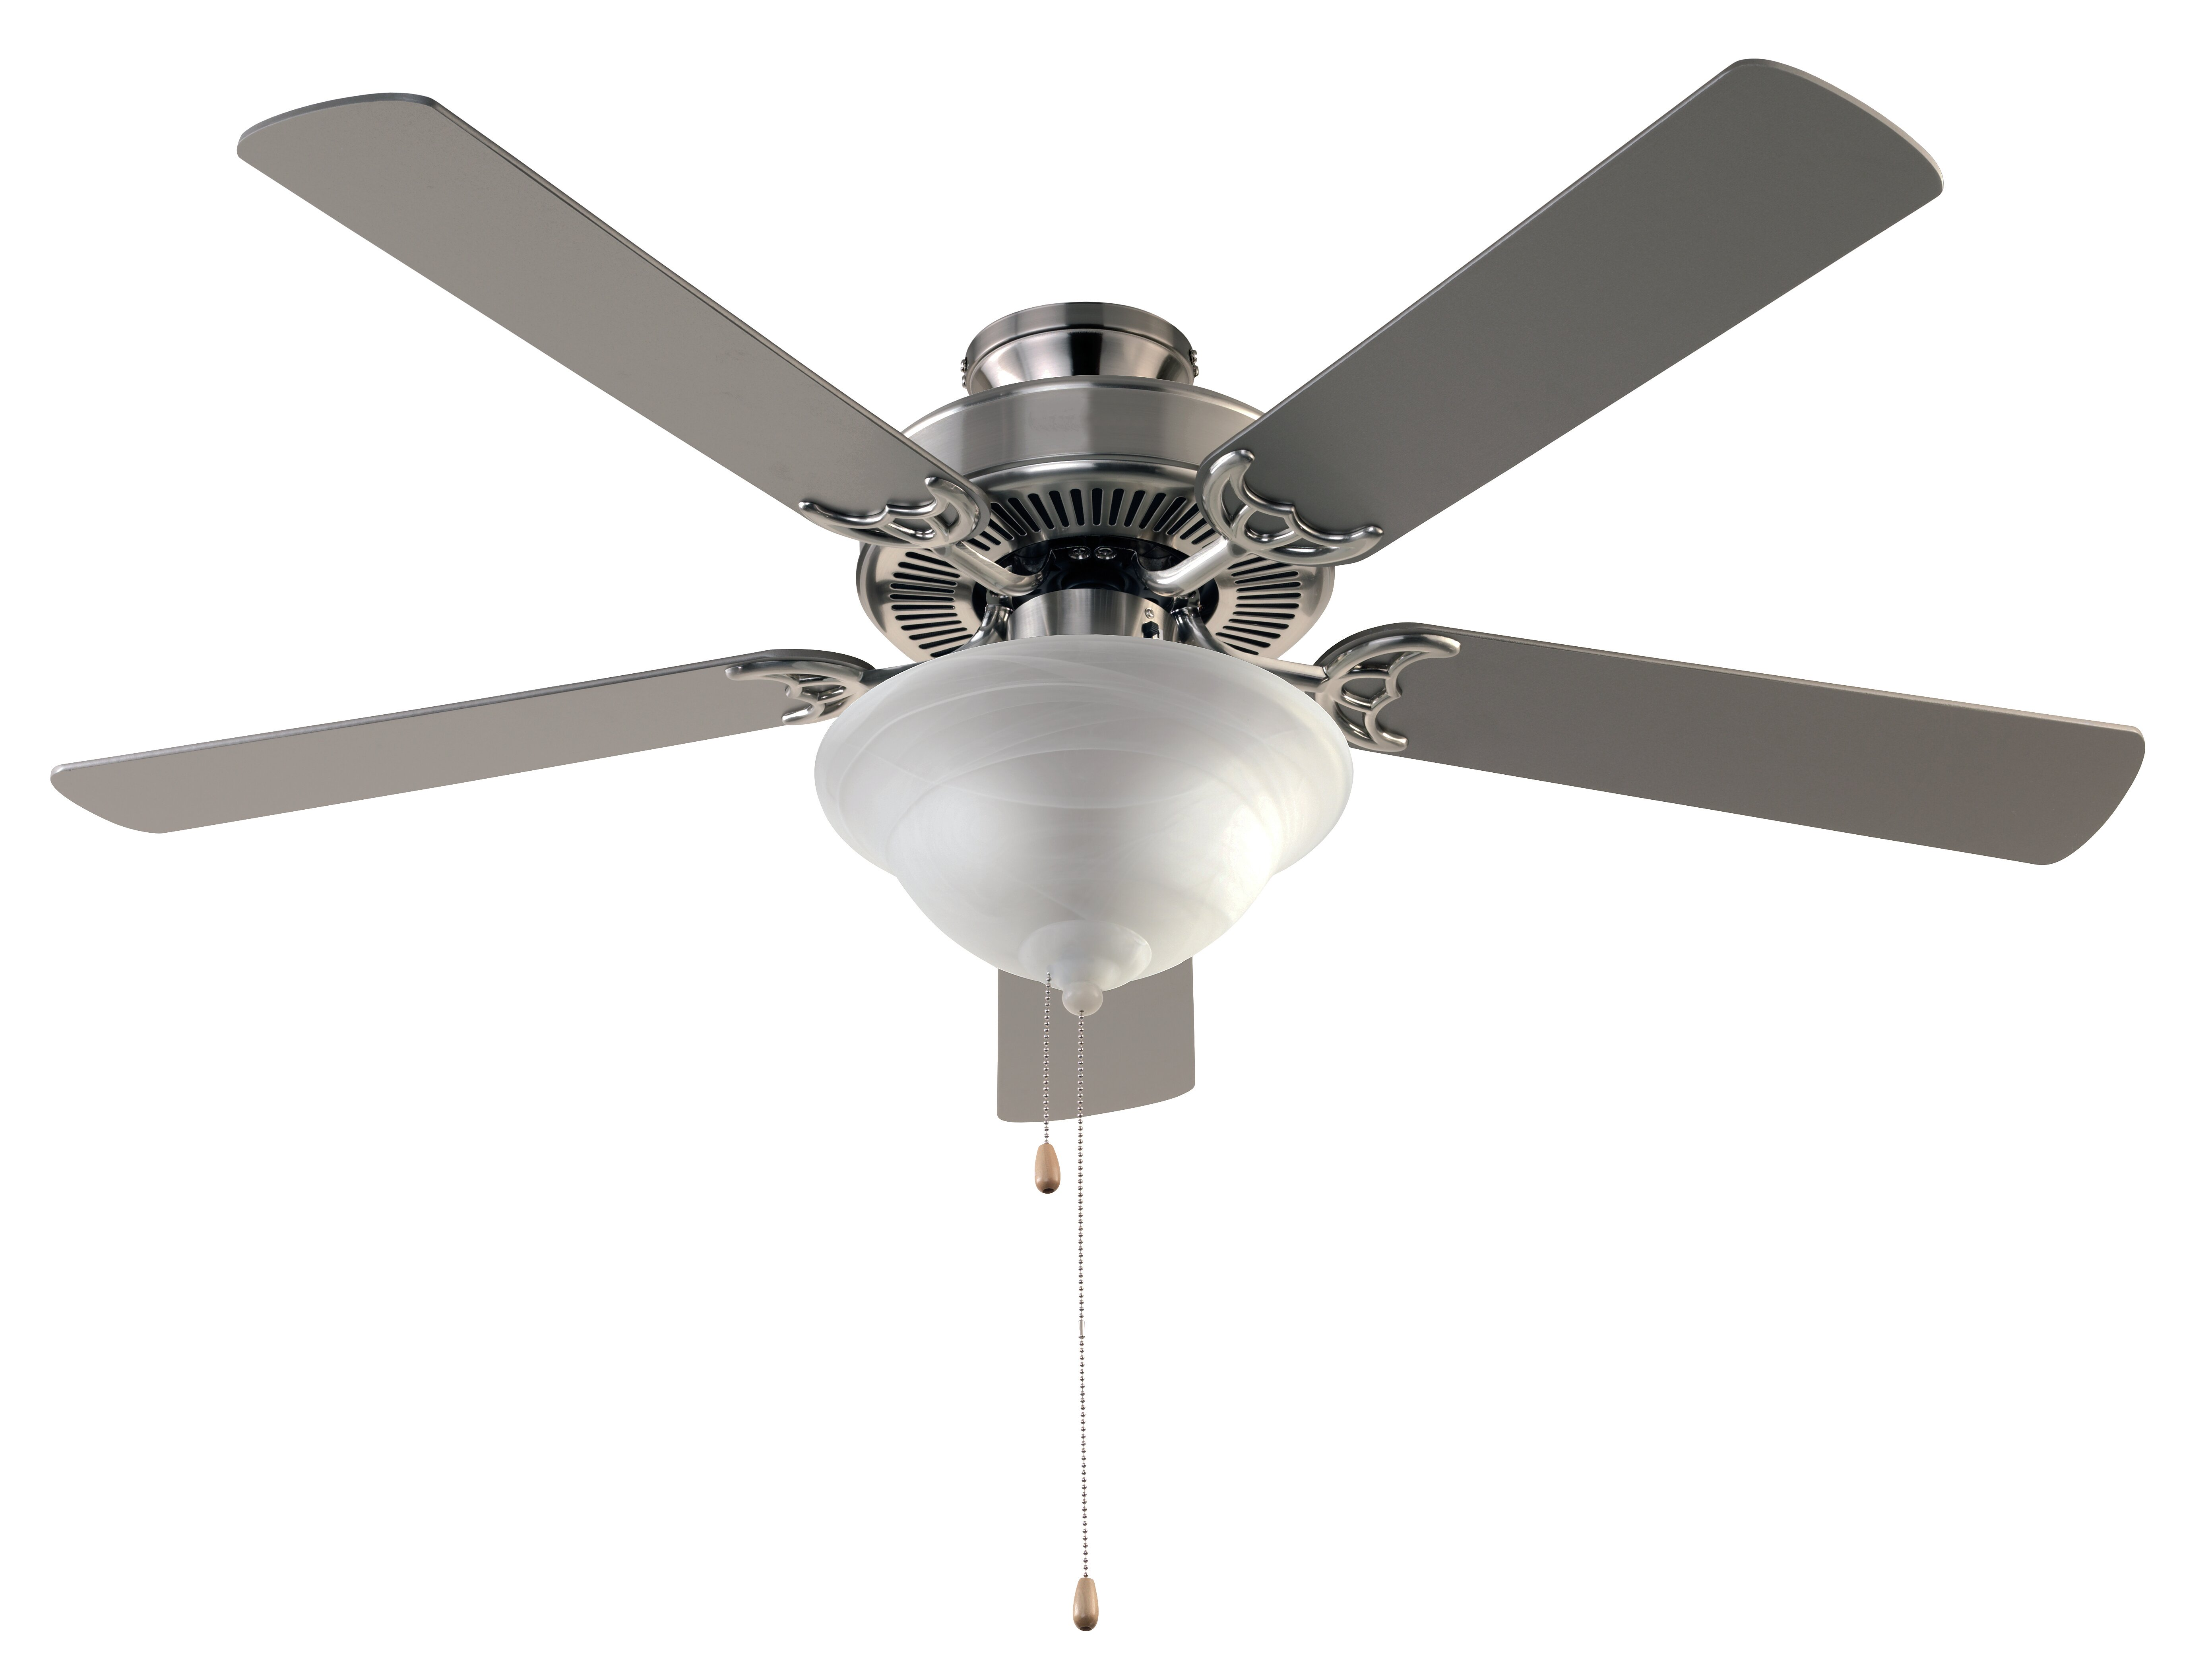 Ceiling Fans Youll Love Way Fan Always Hot Light Switched Wiring Done Right Quickview